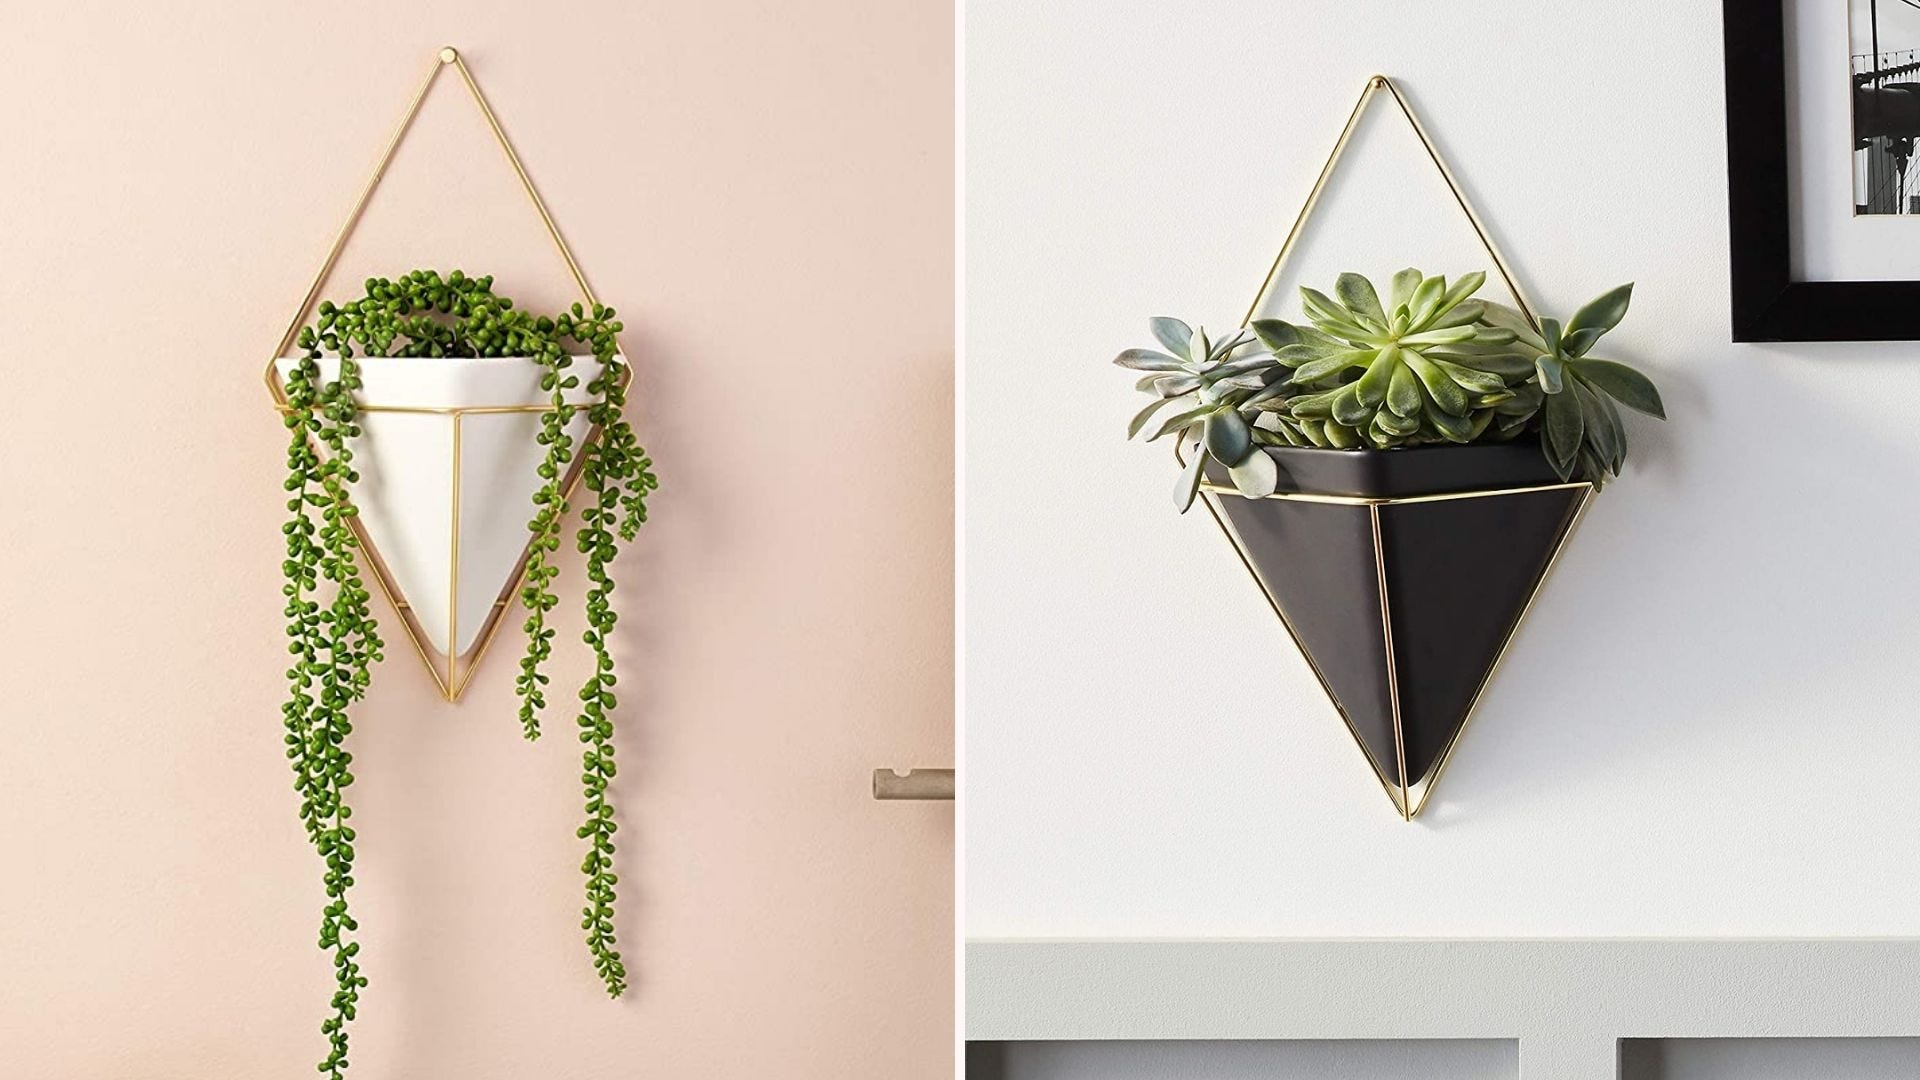 White and black triangle hanging planters.